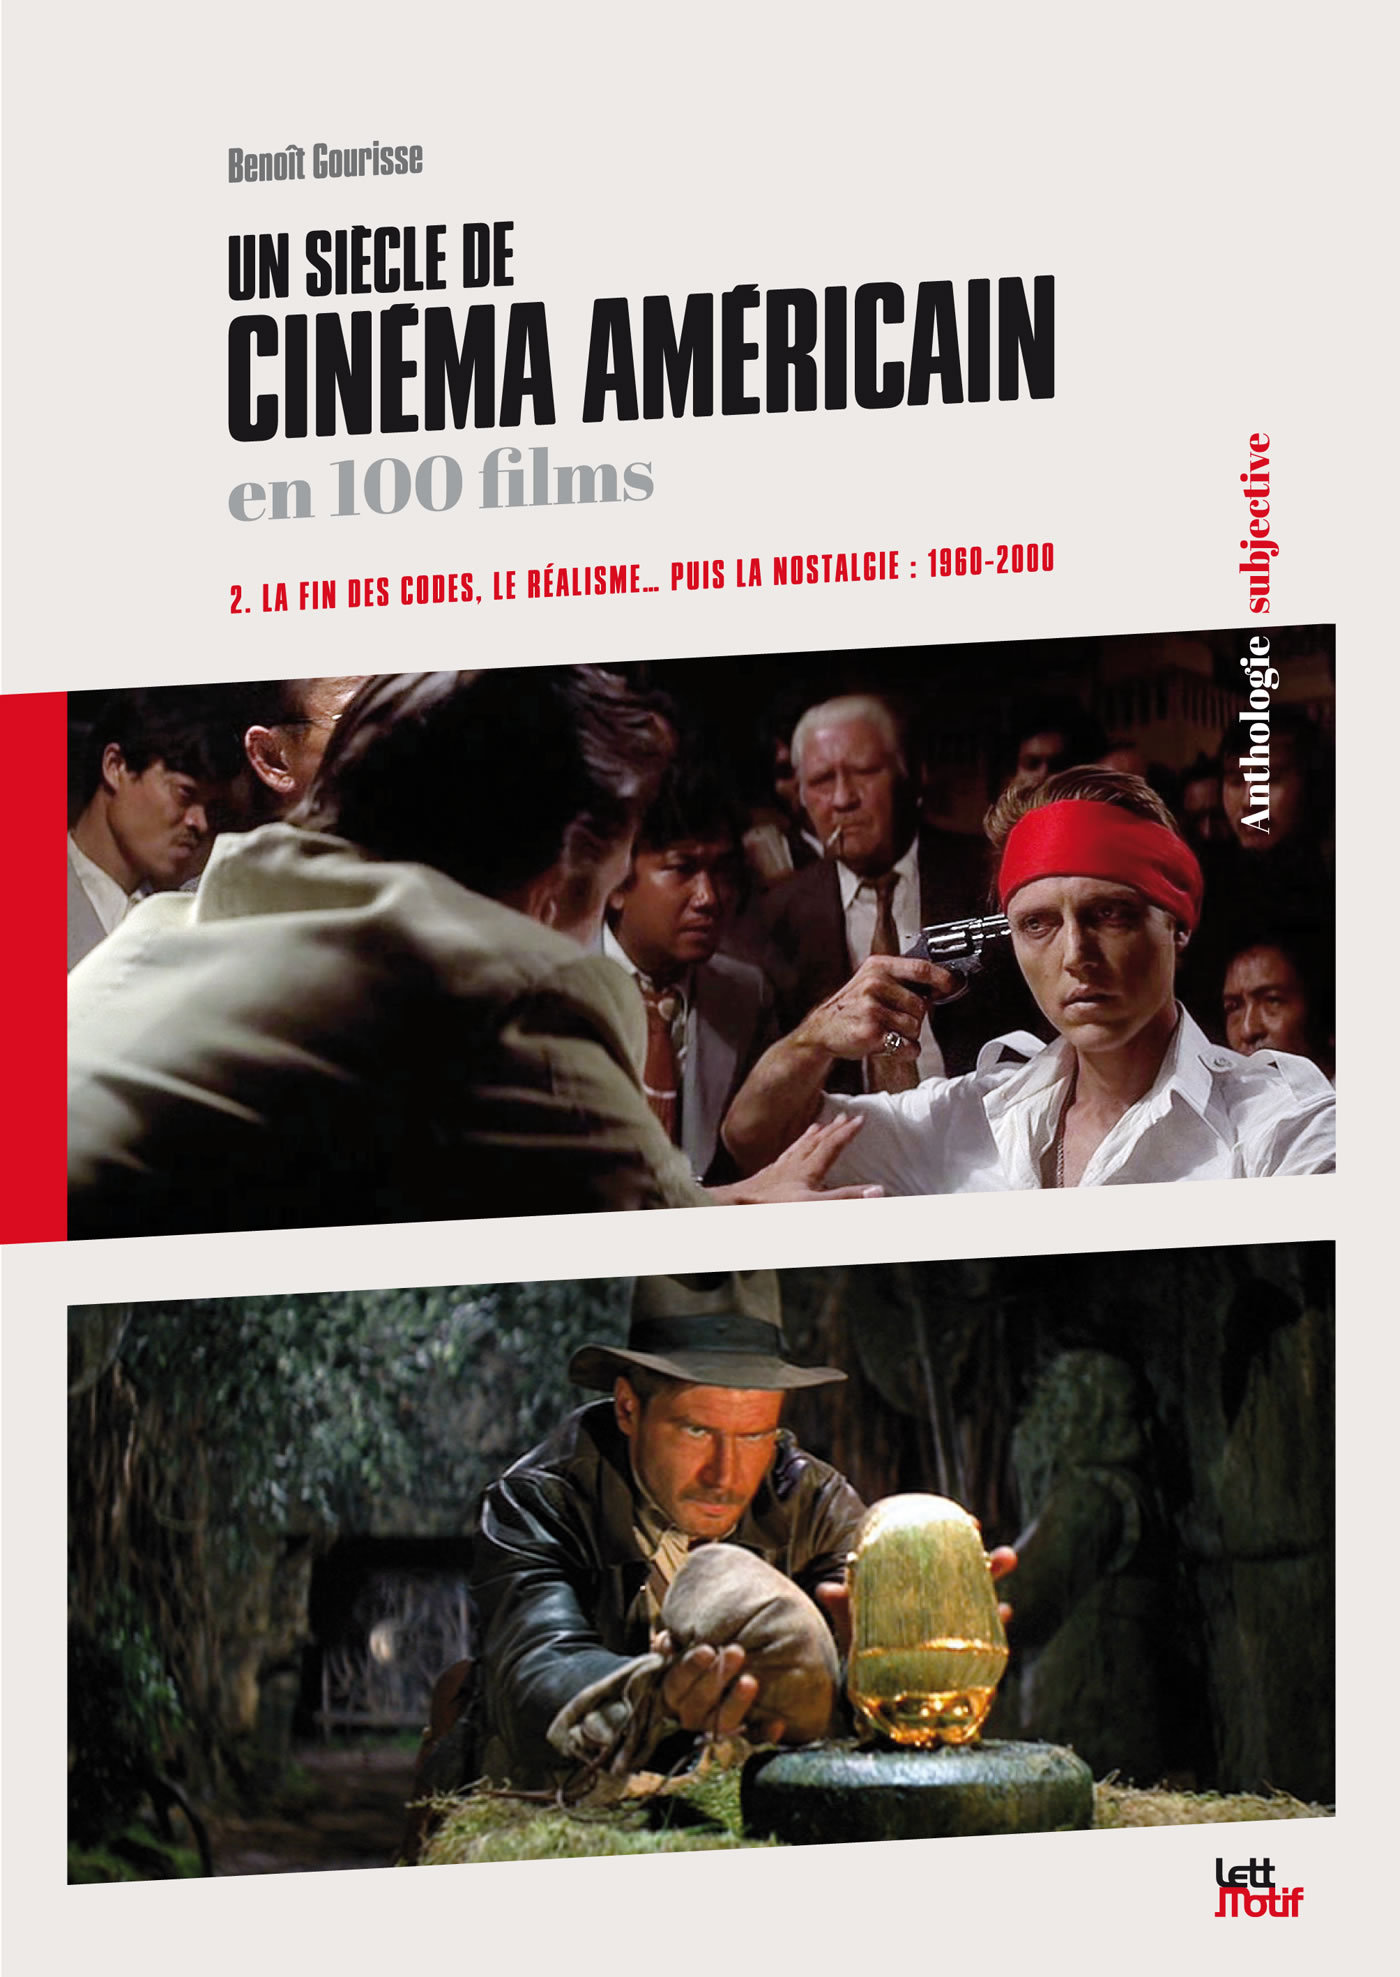 UN SIECLE DE CINEMA AMERICAIN EN 100 FILMS (2. 1960-2000)